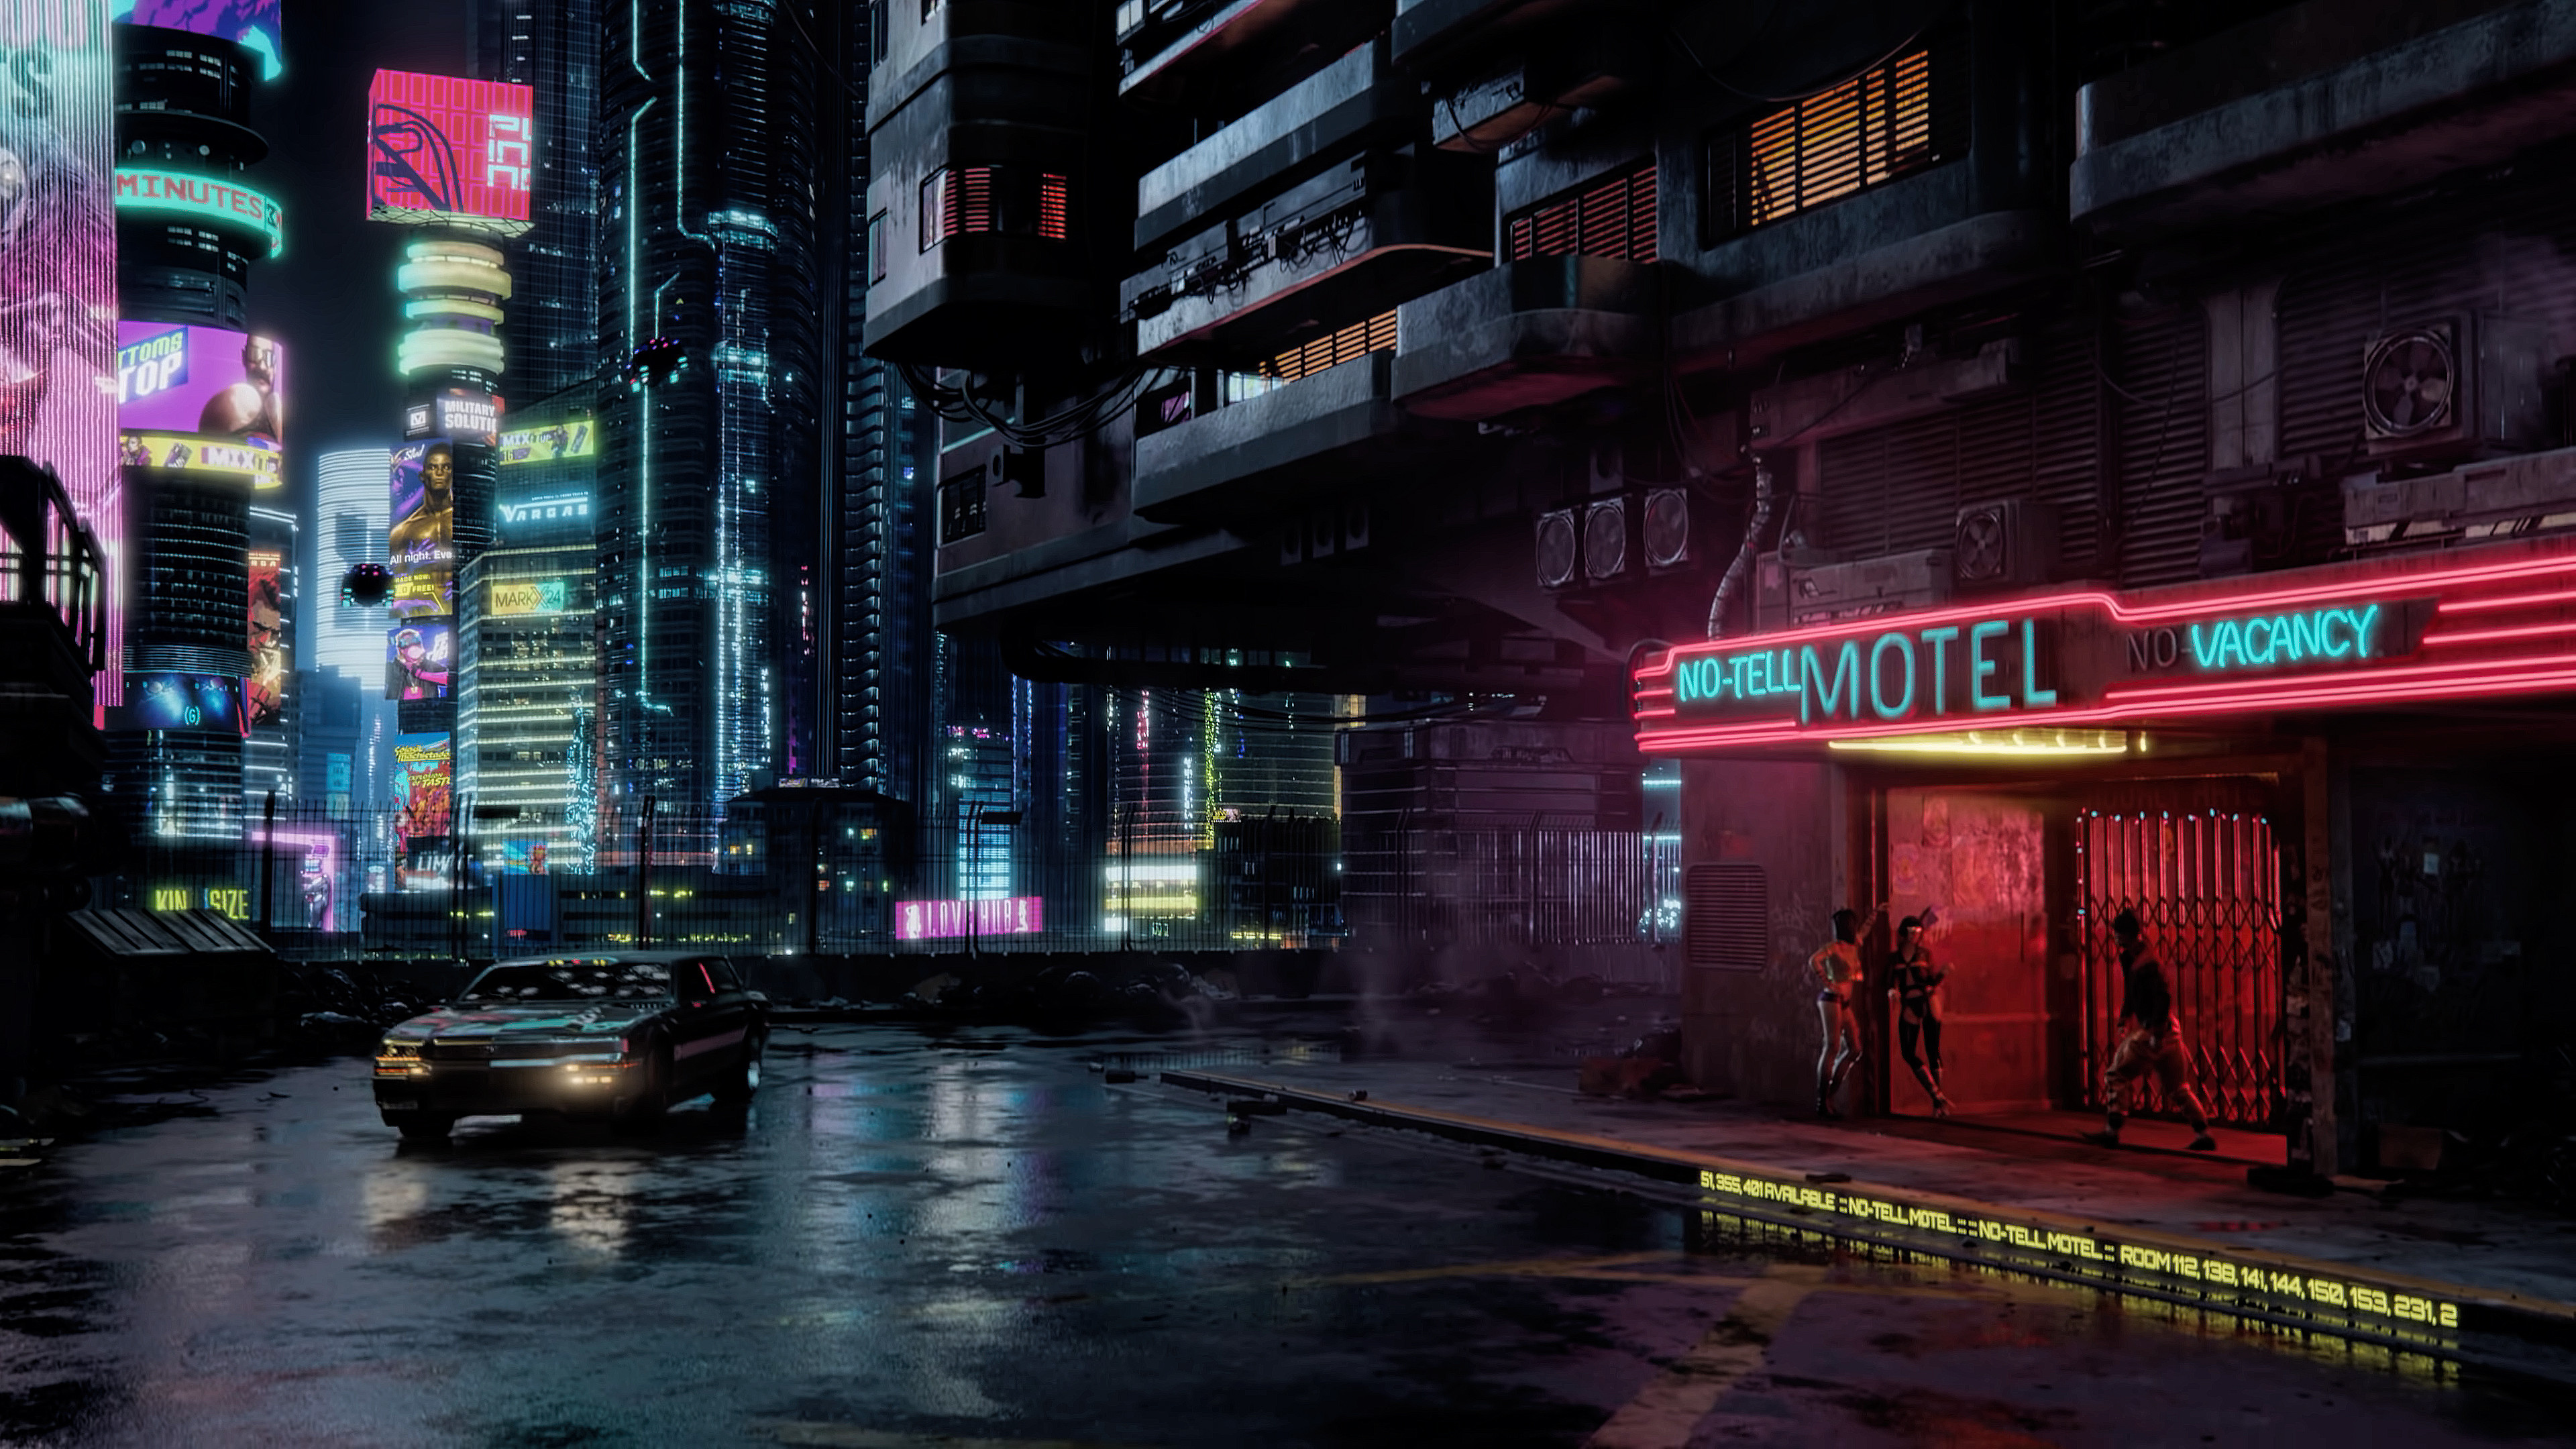 Cyberpunk 2077 4k Ultra Hd Wallpaper Background Image 3840x2160 Id 1022372 Wallpaper Abyss